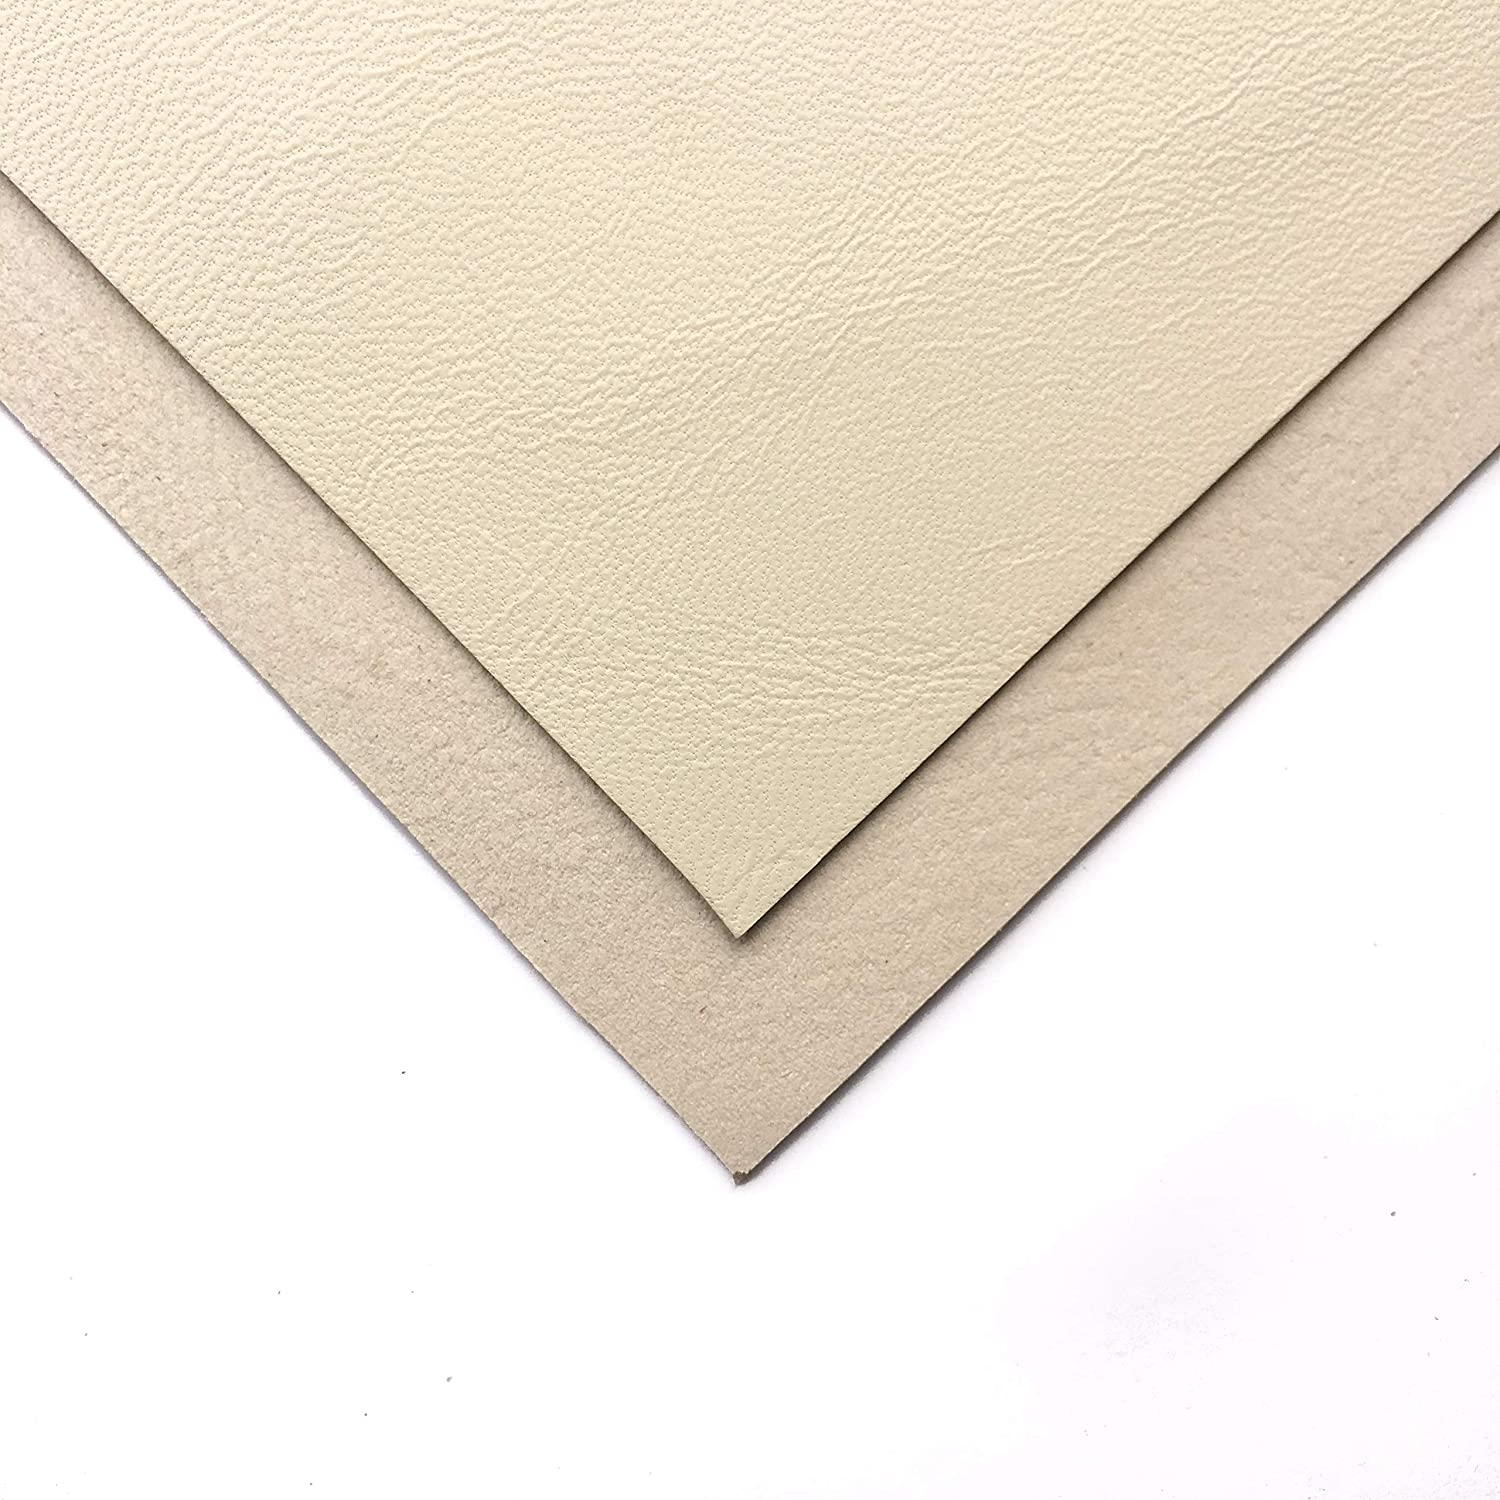 Off White Lambskin Leather Fabric: Real White Leather Material for Crafting and Bookbinding depending on The Leather Size (Warm White, 6x6In/ 15x15cm)